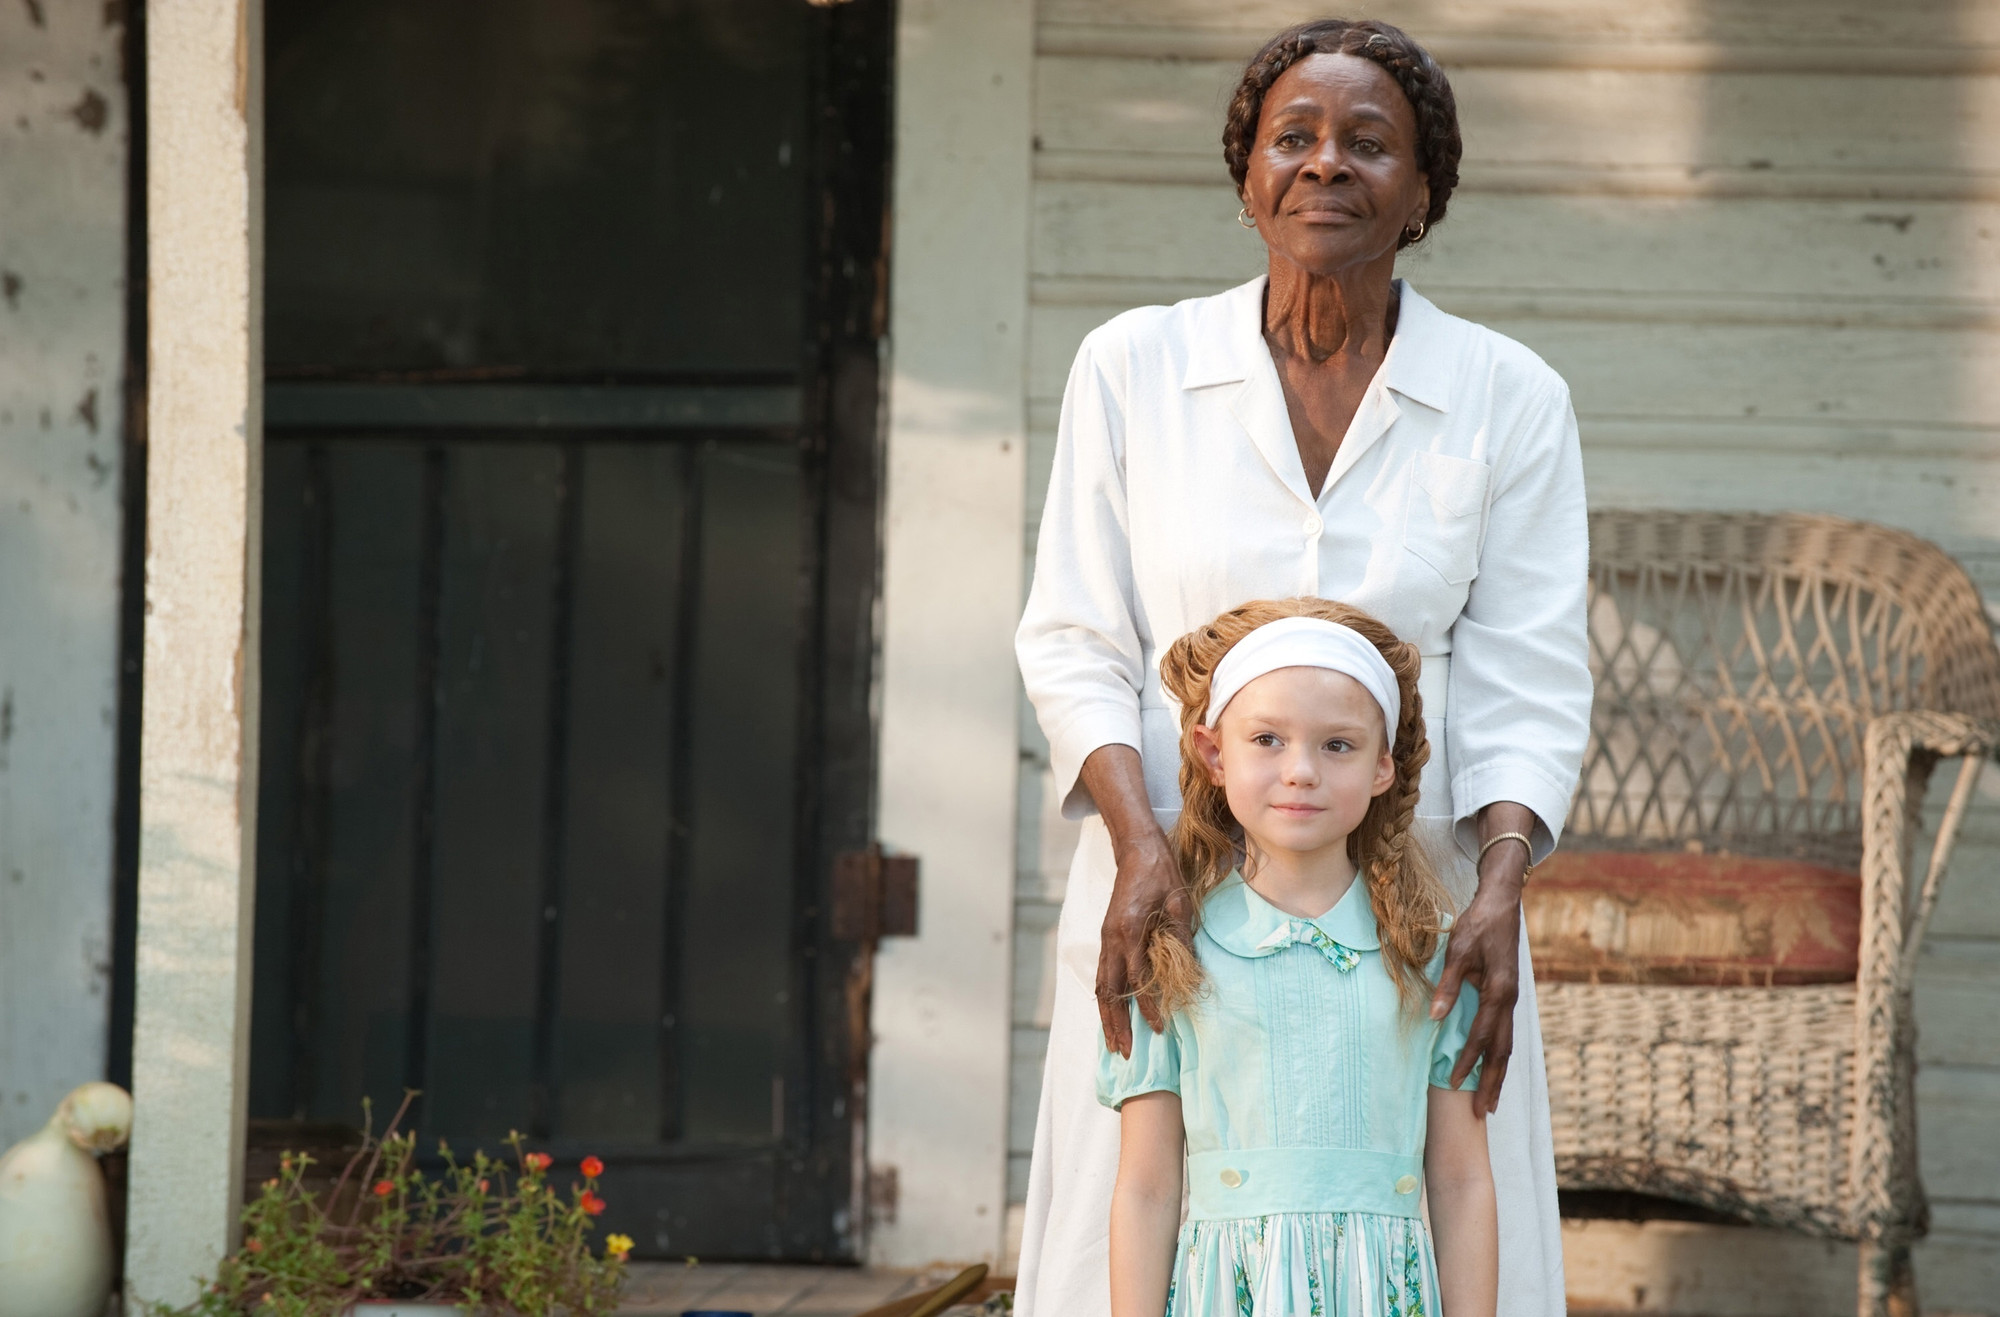 The Help 2011 Written And Directed By Tate Taylor Moma